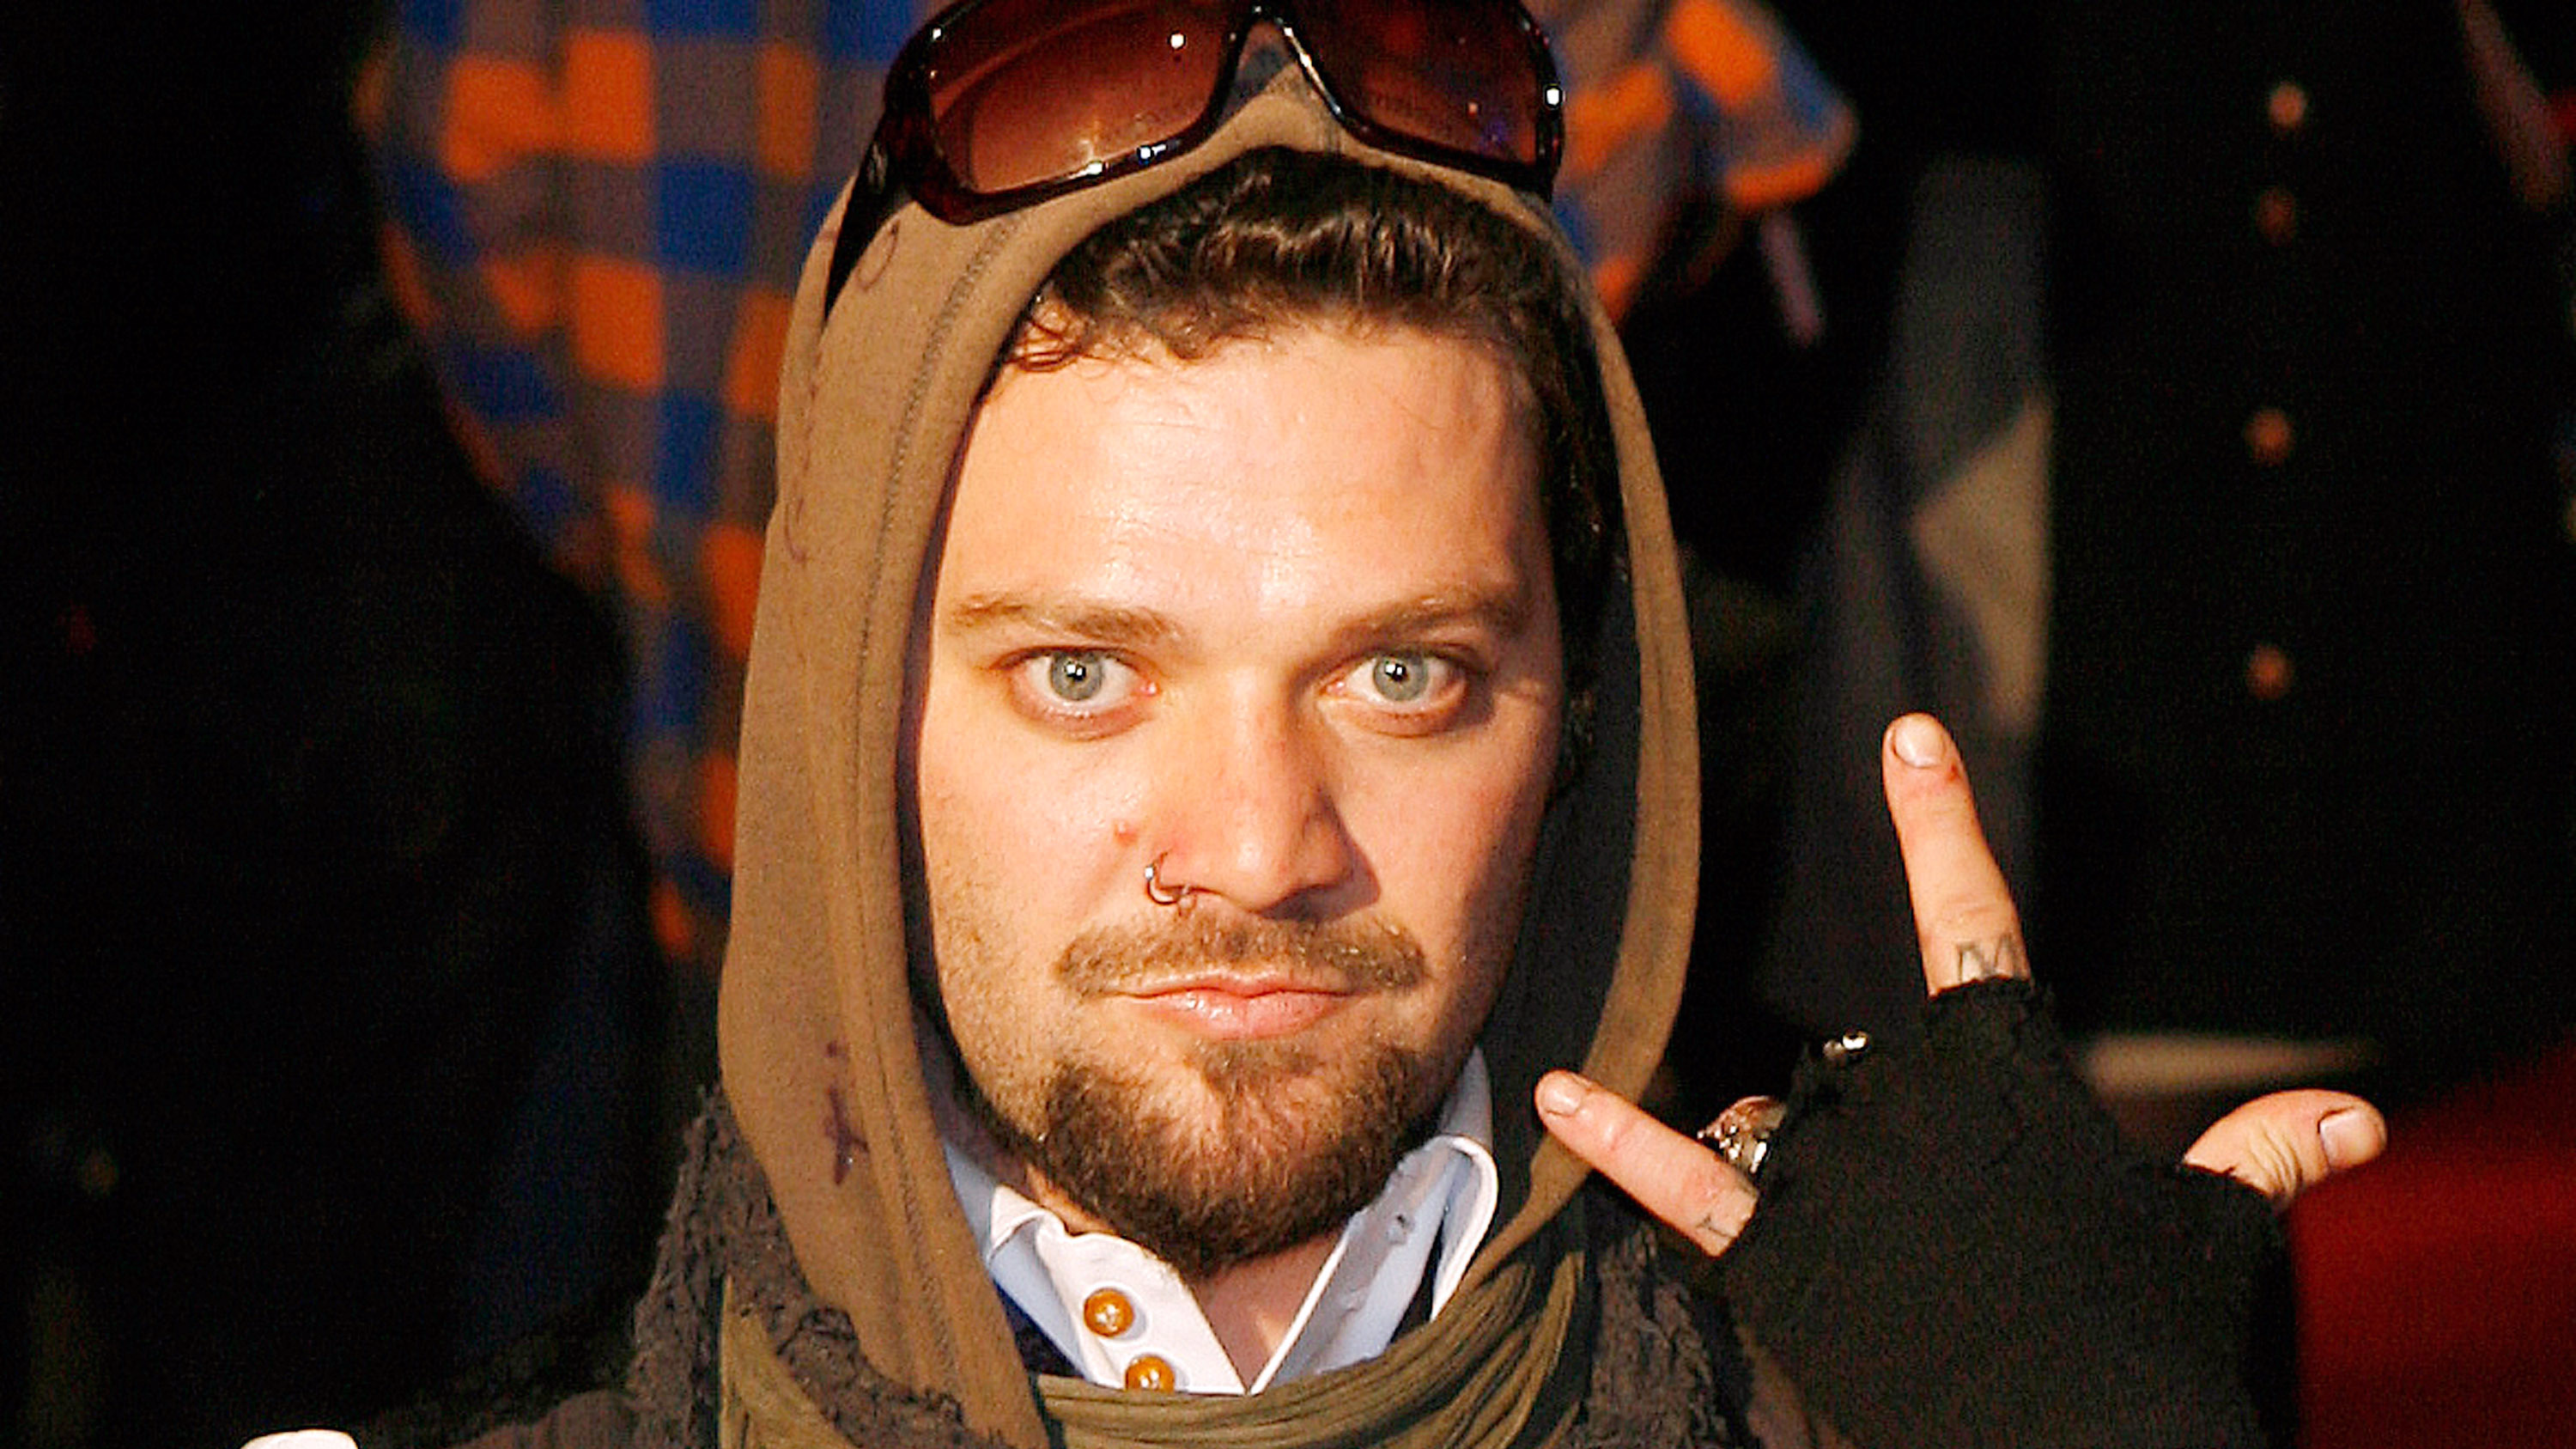 Jackass Star Bam Margera Returns To Skateboarding In New Video